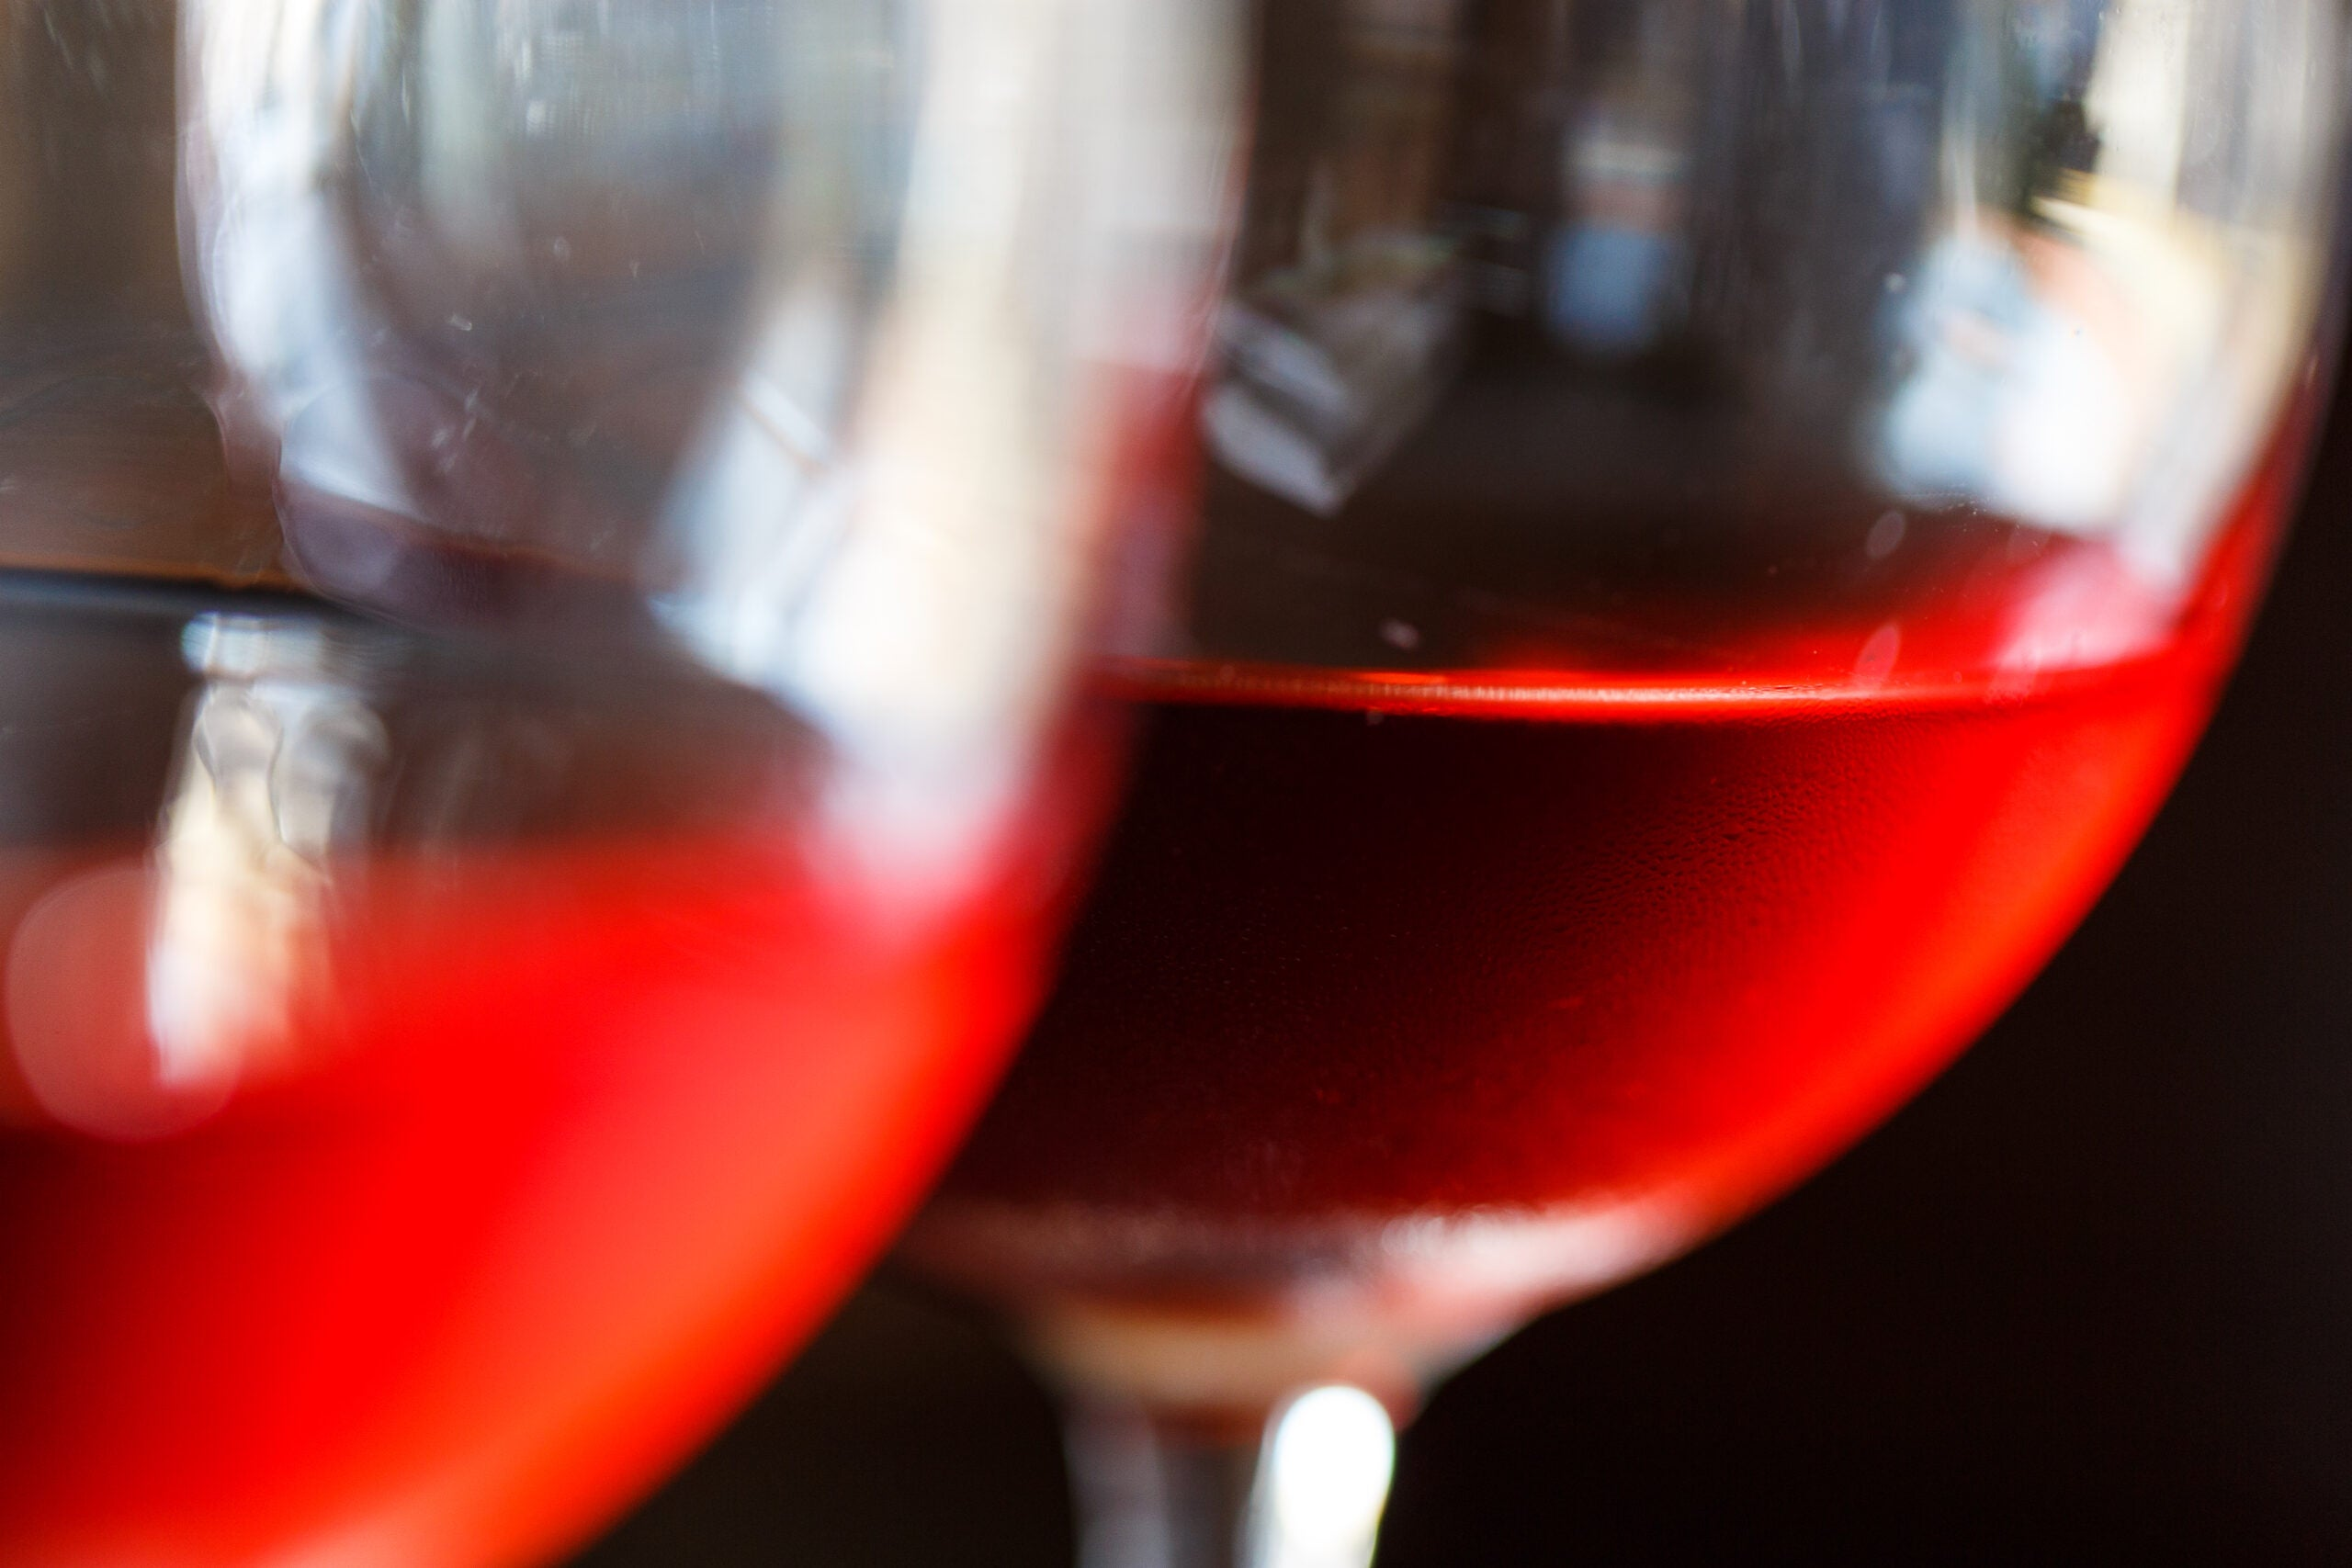 two glasses of red liquid